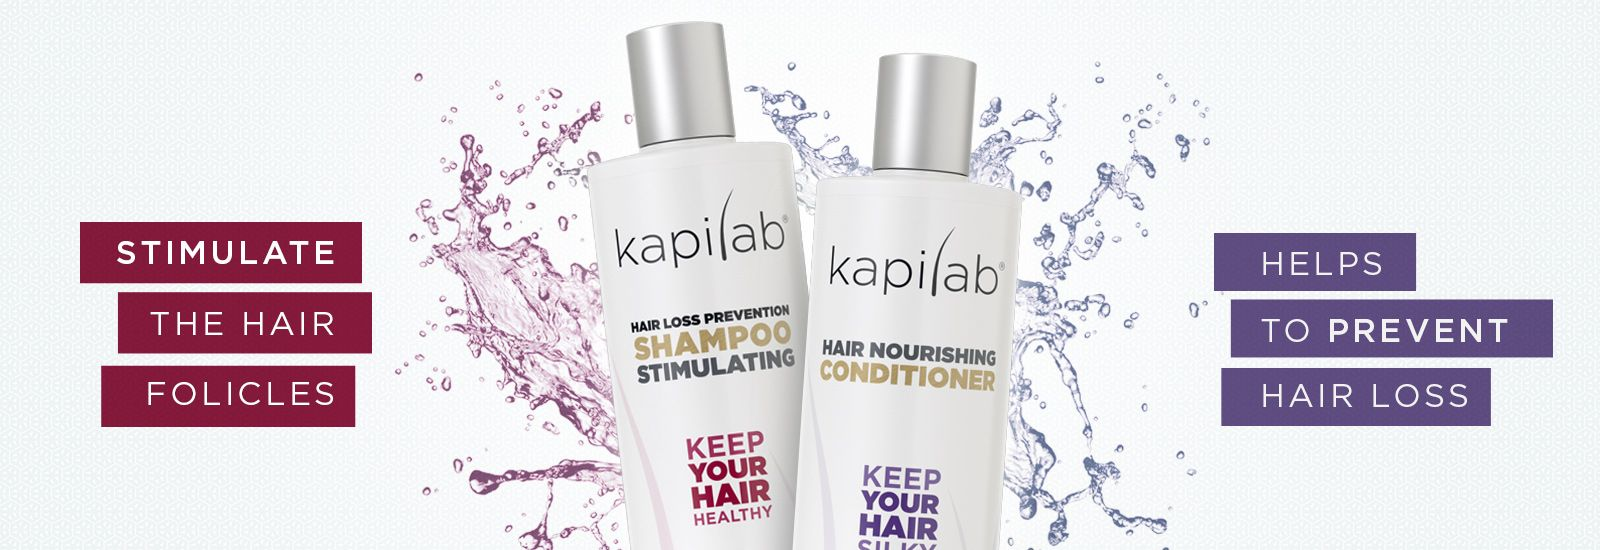 Kapilab Shampoo & Conditioner